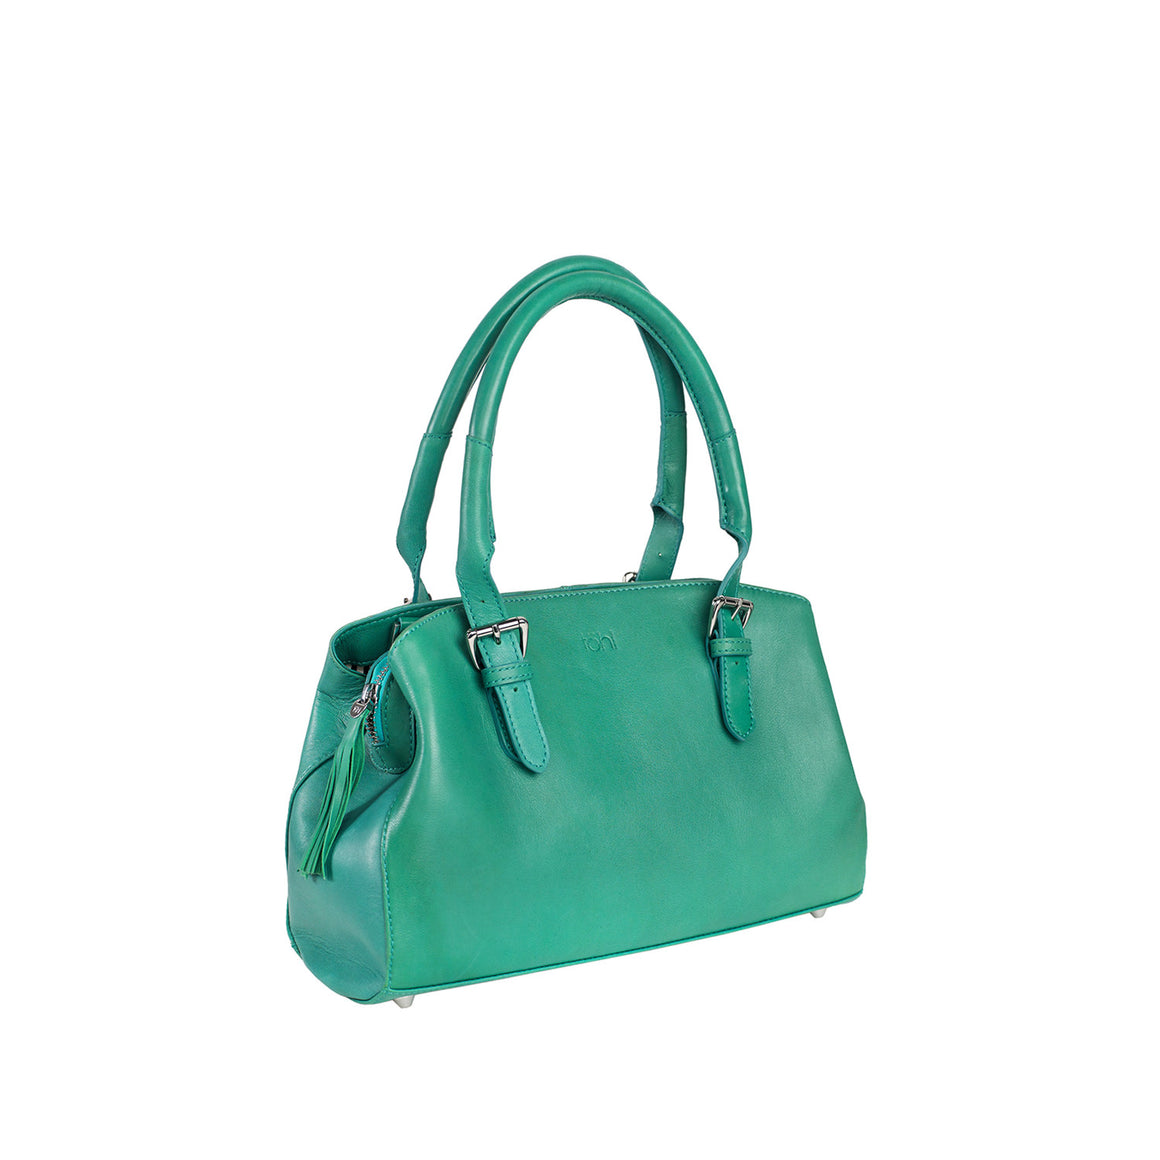 HH 0010 - TOHL ALVA WOMEN'S DAY BAG - TURKIS